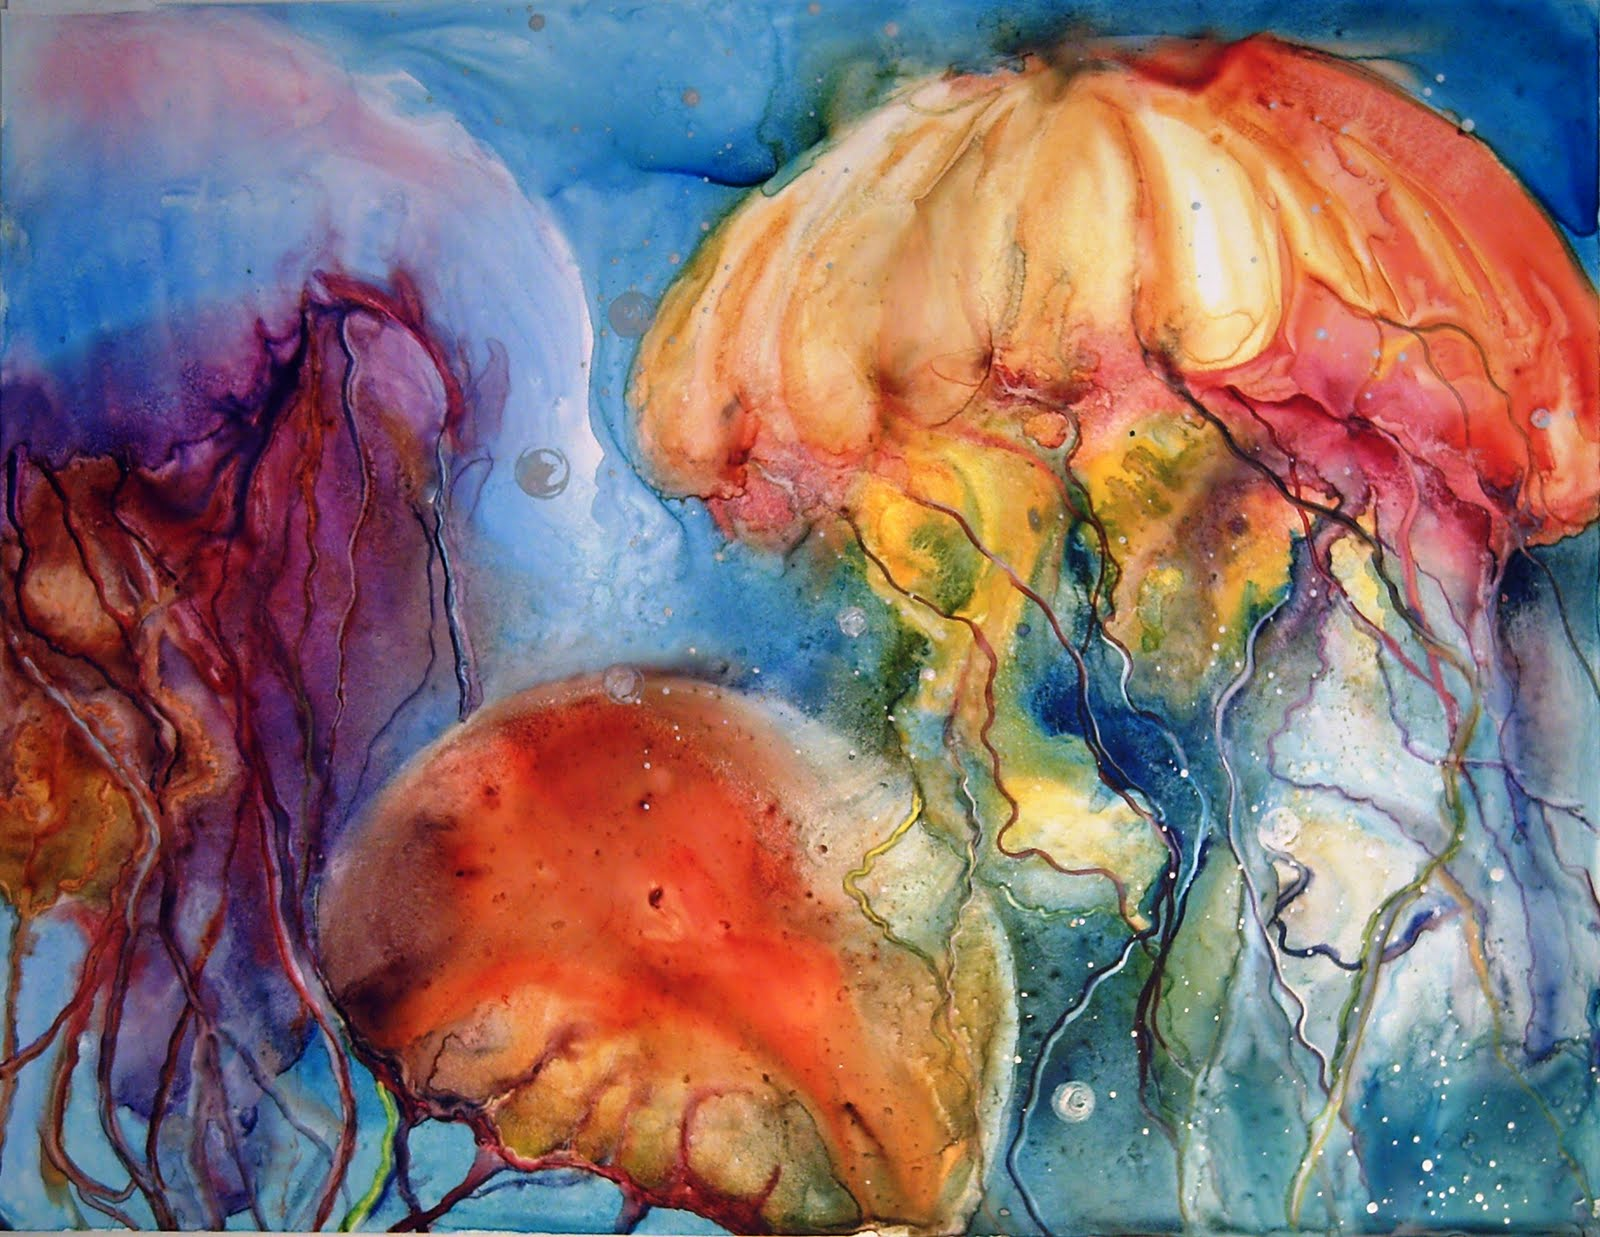 Donna maclure watercolors may 2010 for Jelly fish painting